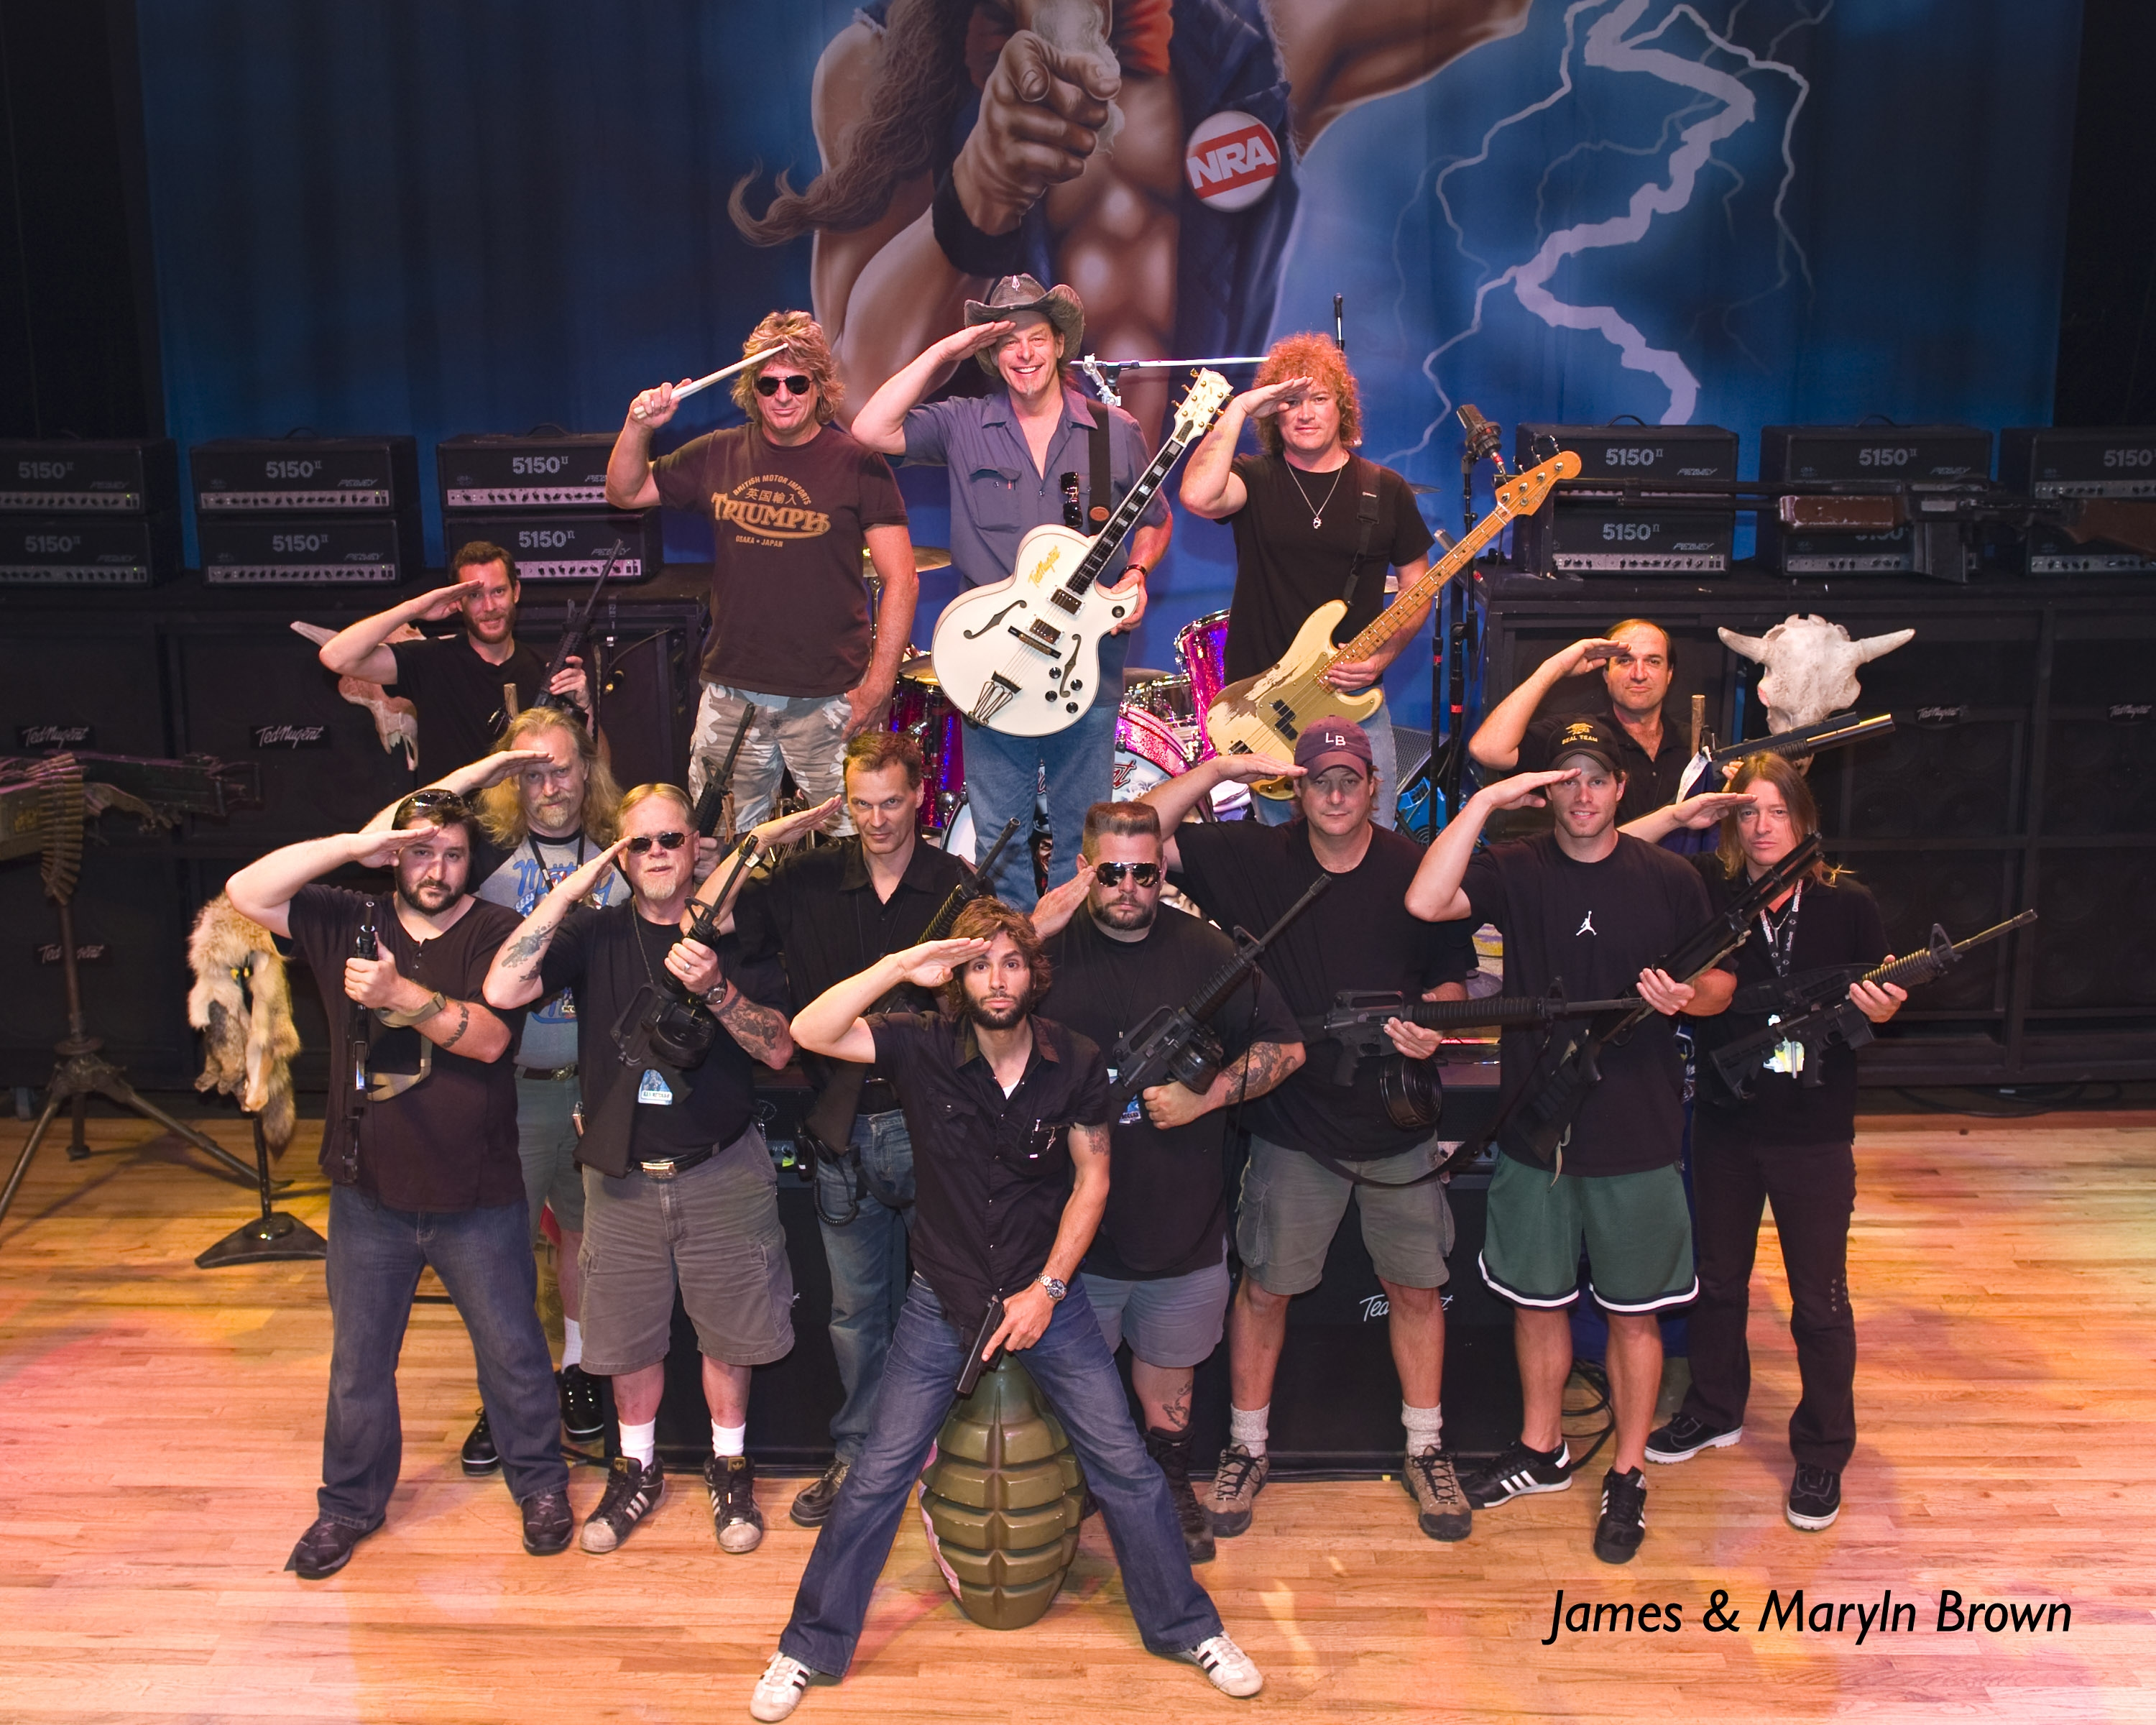 Photo of John Schlick - Concert Lighting Designer, as part of the 2008 Ted Nugent tour.